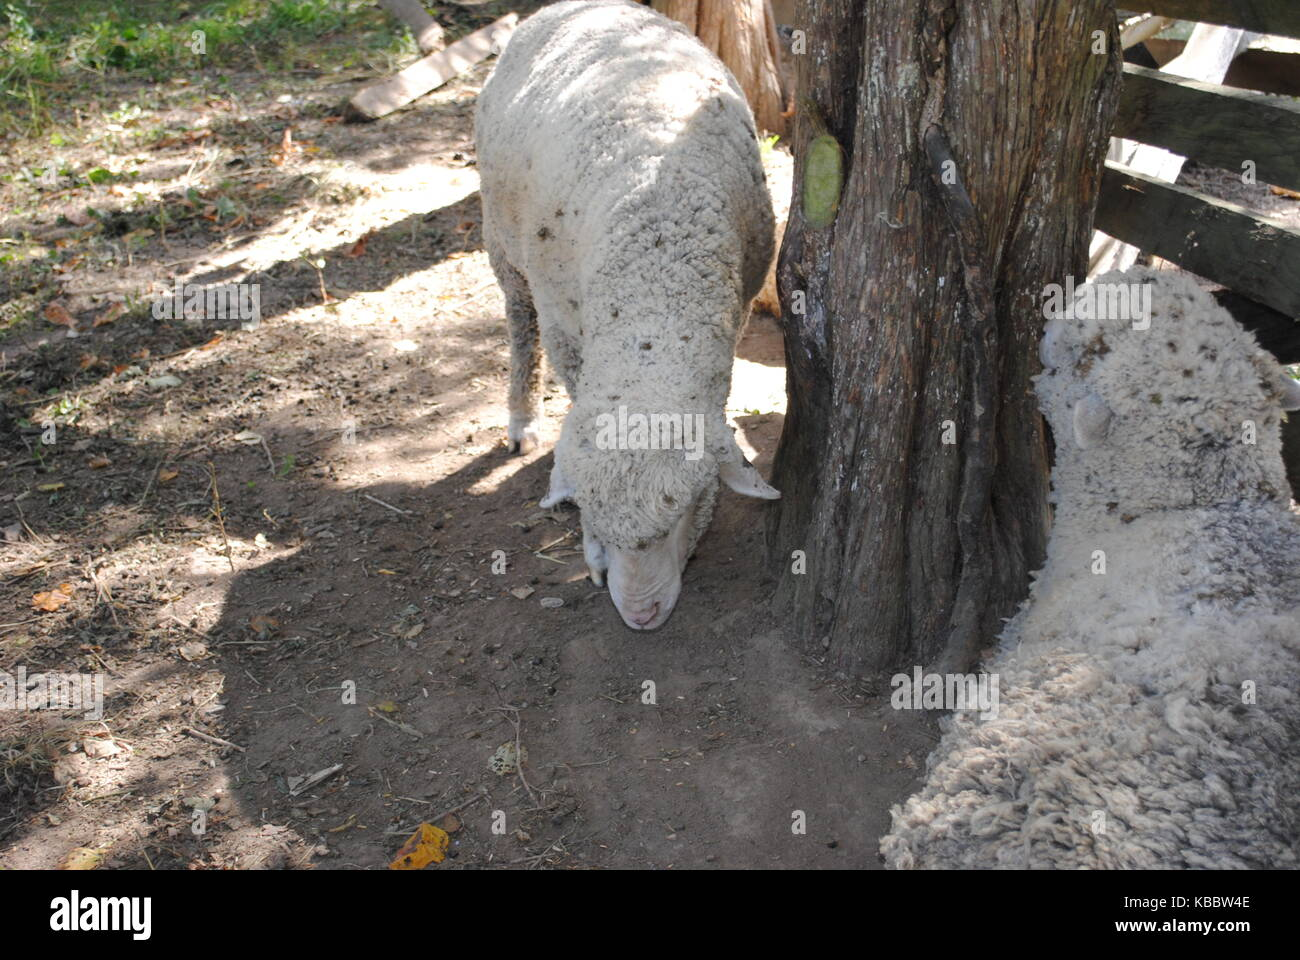 Sheep next to tree at Carriage Hill - Stock Image